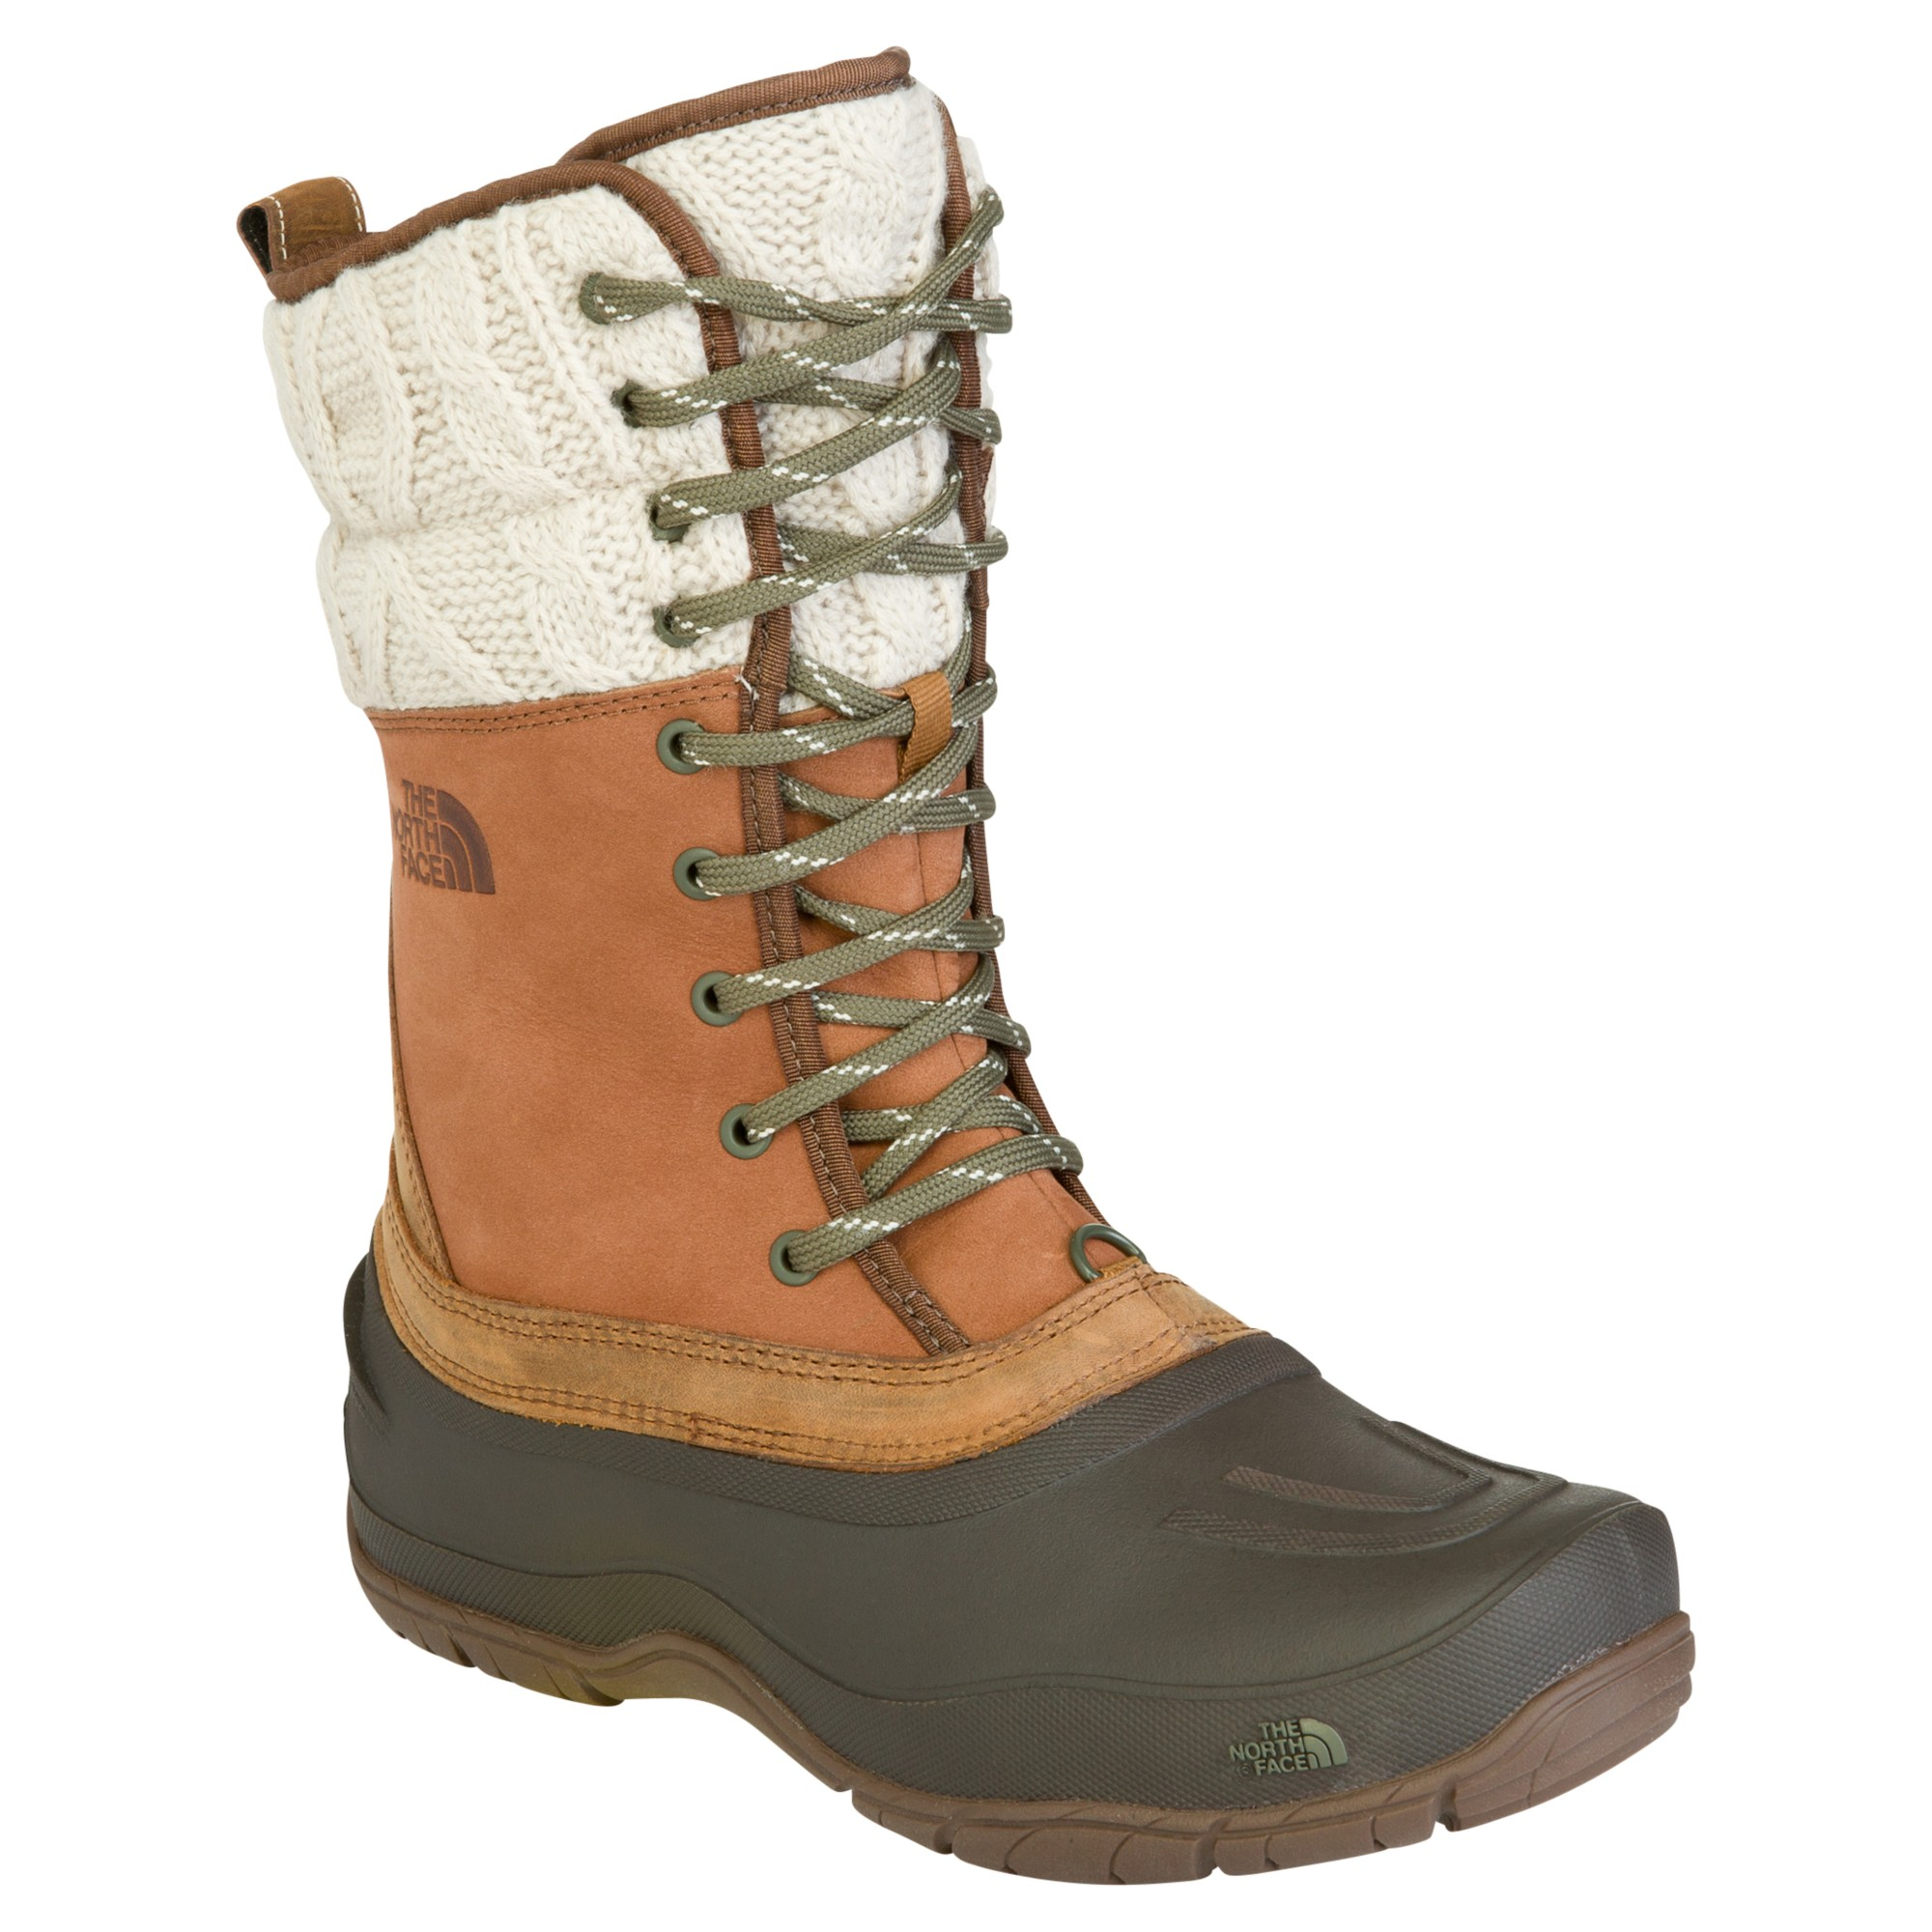 47b1d2820 The North Face Women'S Shellista Lace Leather Snow Boots in Green - Lyst